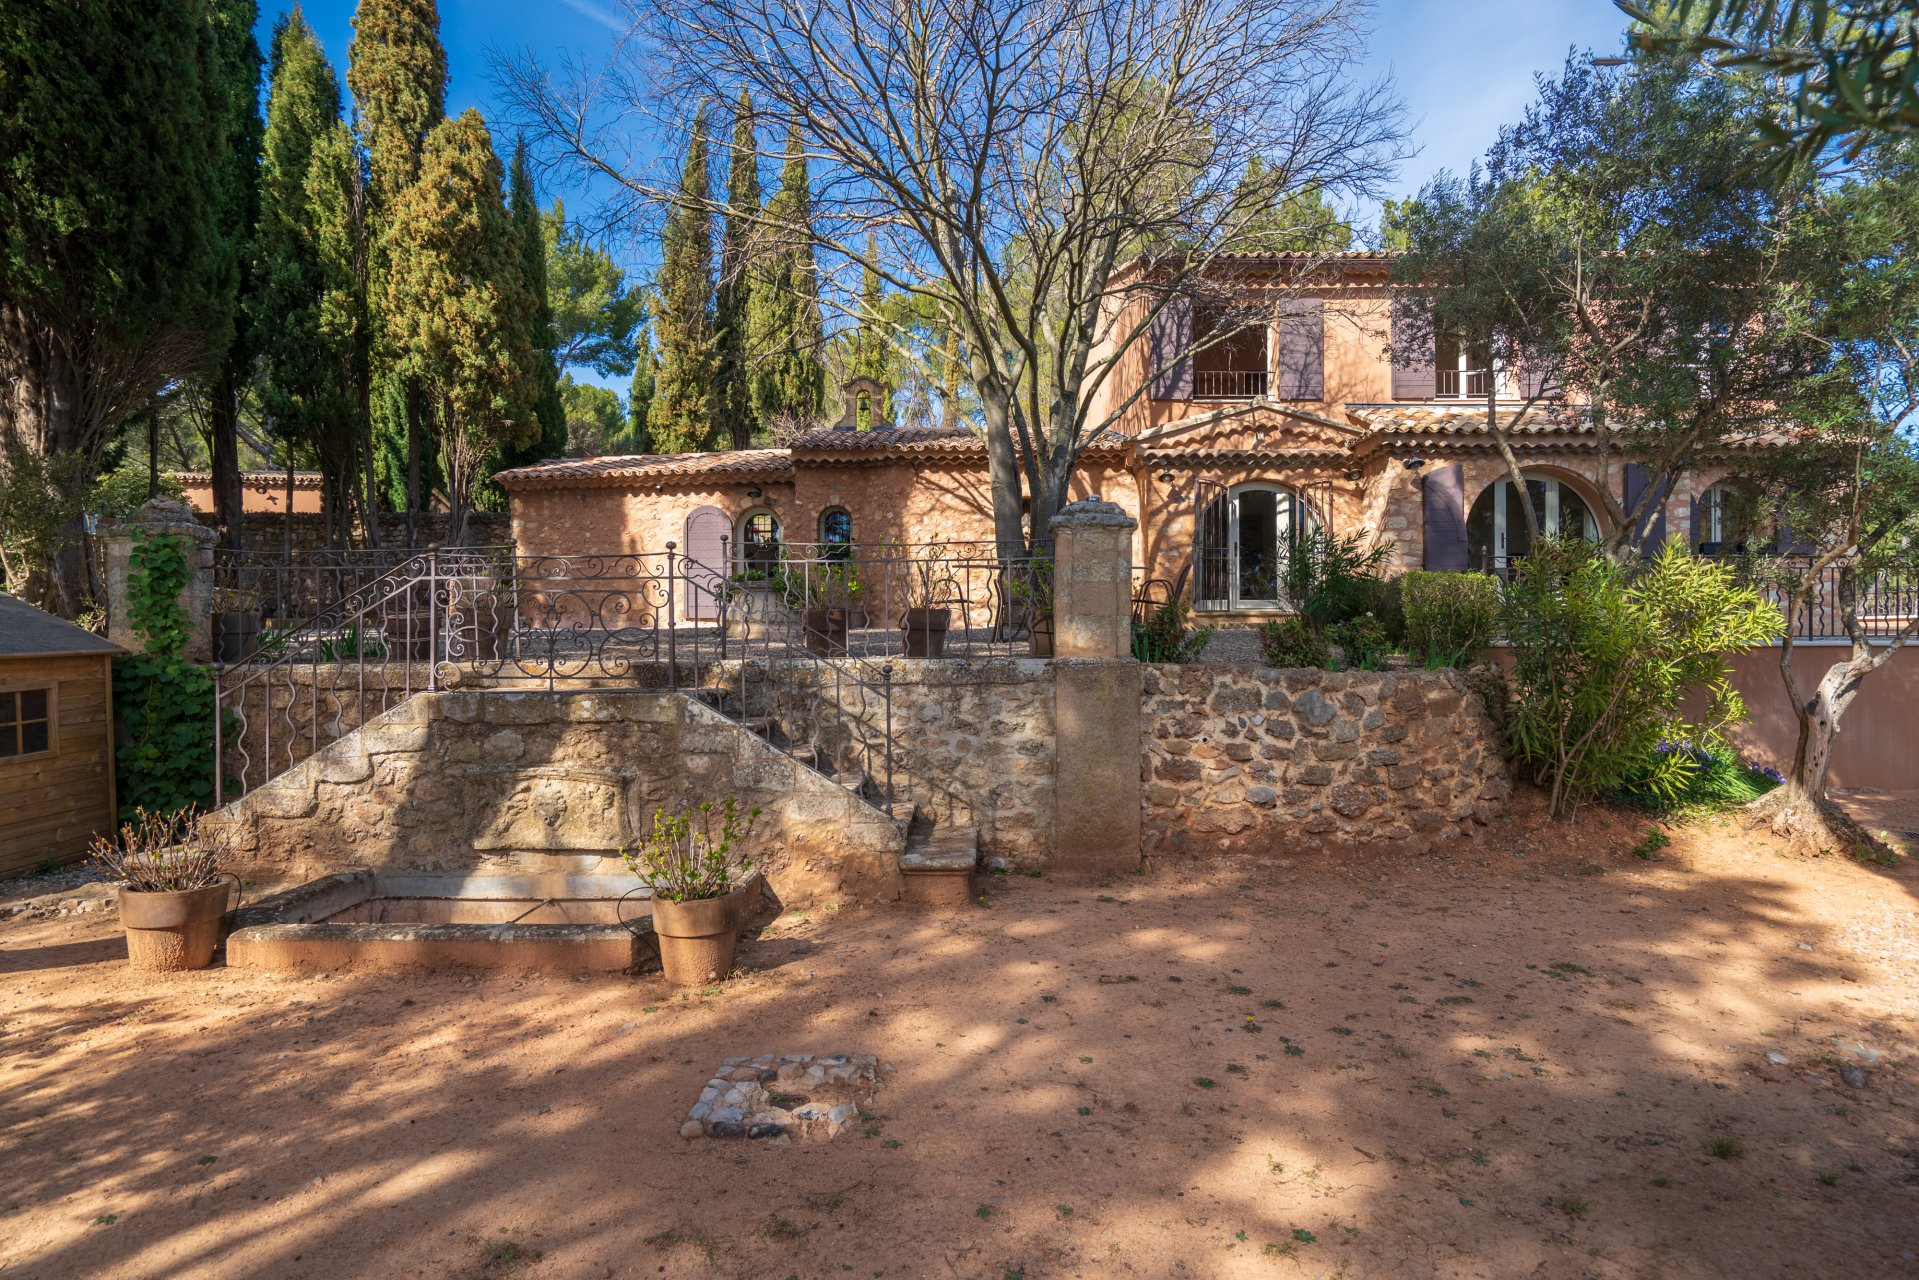 magnificent-16th-century-priory-completely-renovated-for-sale-tholonet-swimming-pool-storeroom-laundry-room-luxurious-amenities